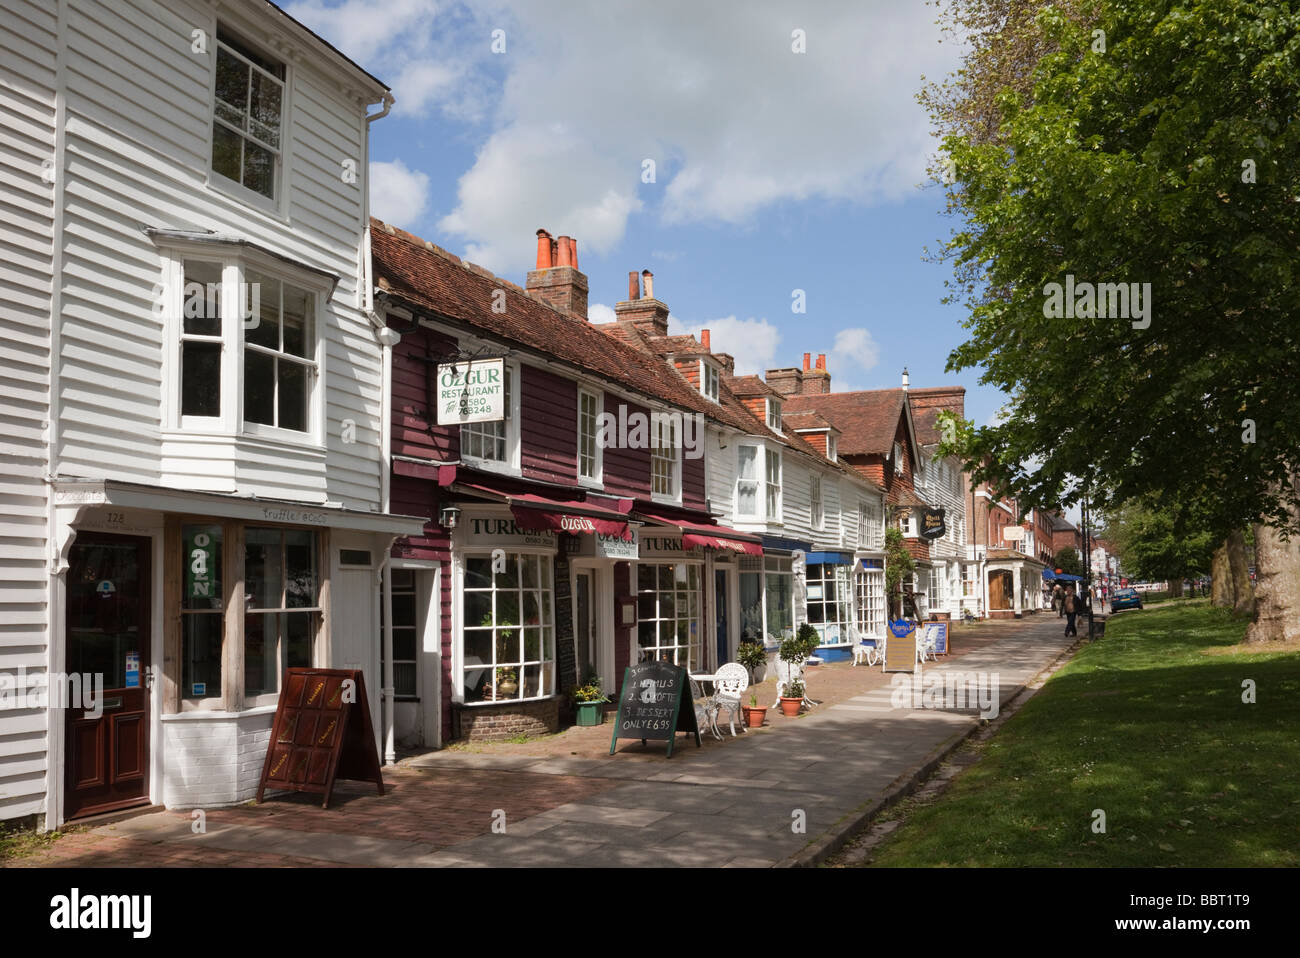 Tenterden Kent England UK  Small shops in 15th to 18th century buildings on tree-lined High Street in Wealden town - Stock Image